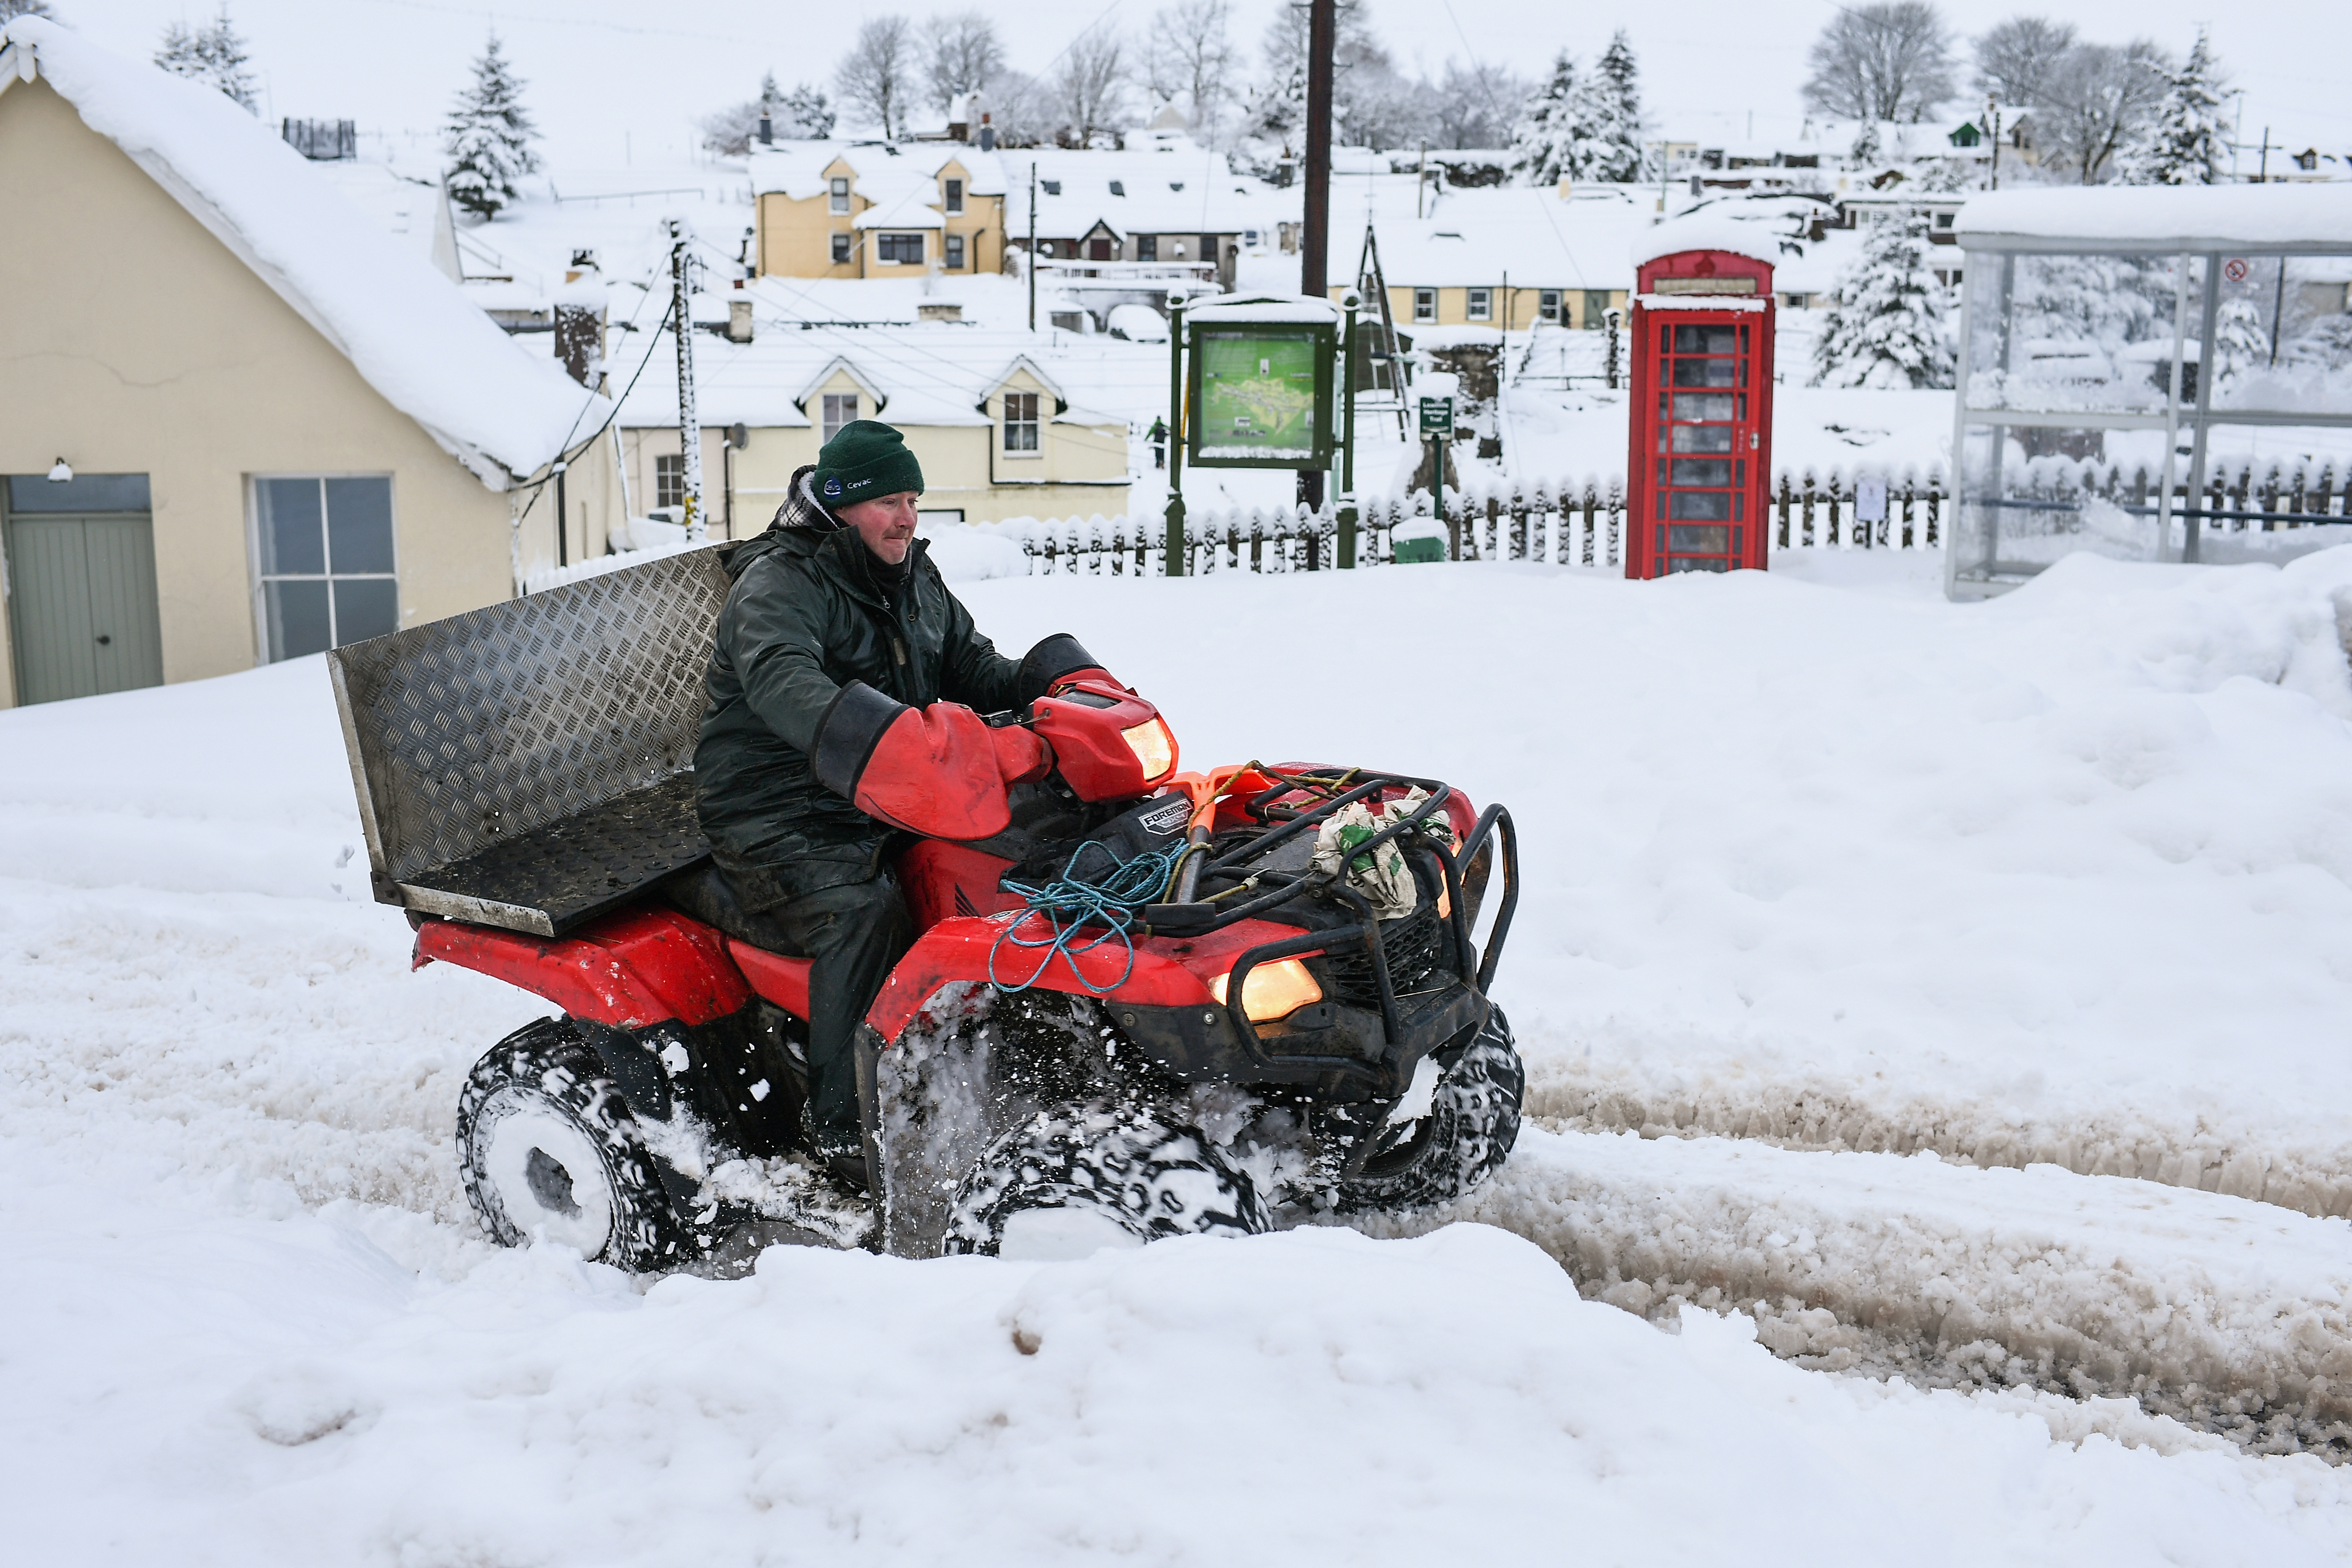 Snow and hail weather warning issued for London